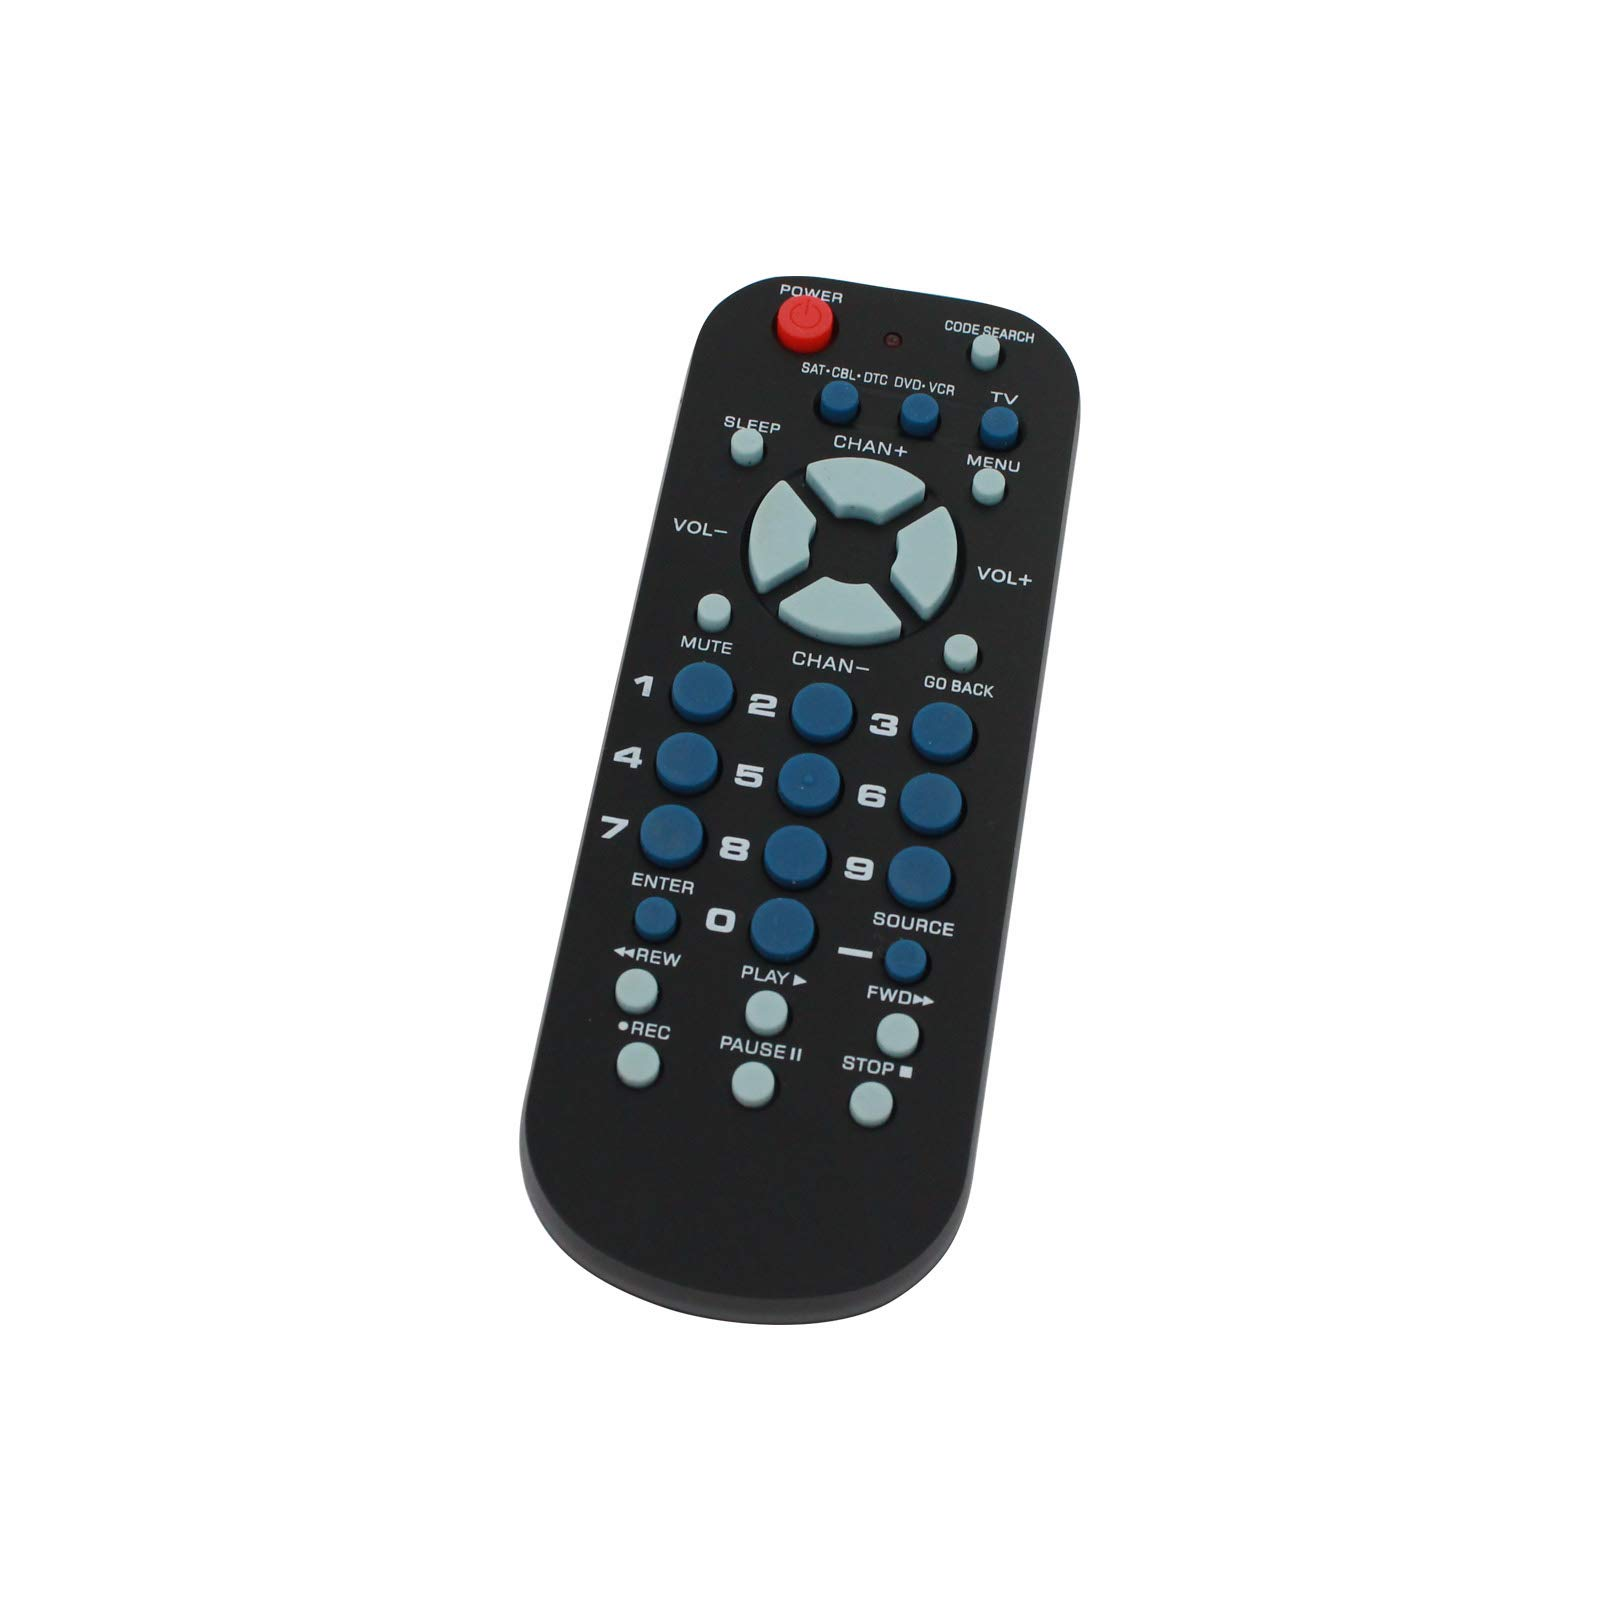 Replacement for RCA RCR503BZ 3-Device Universal Remote Control- Works with Samsung, LG, Vizio, Sony, Insignia, Hisense, Element, Sharp, Sceptre, Toshiba, Westinghouse, RCA, Philips, Panasonic TVs